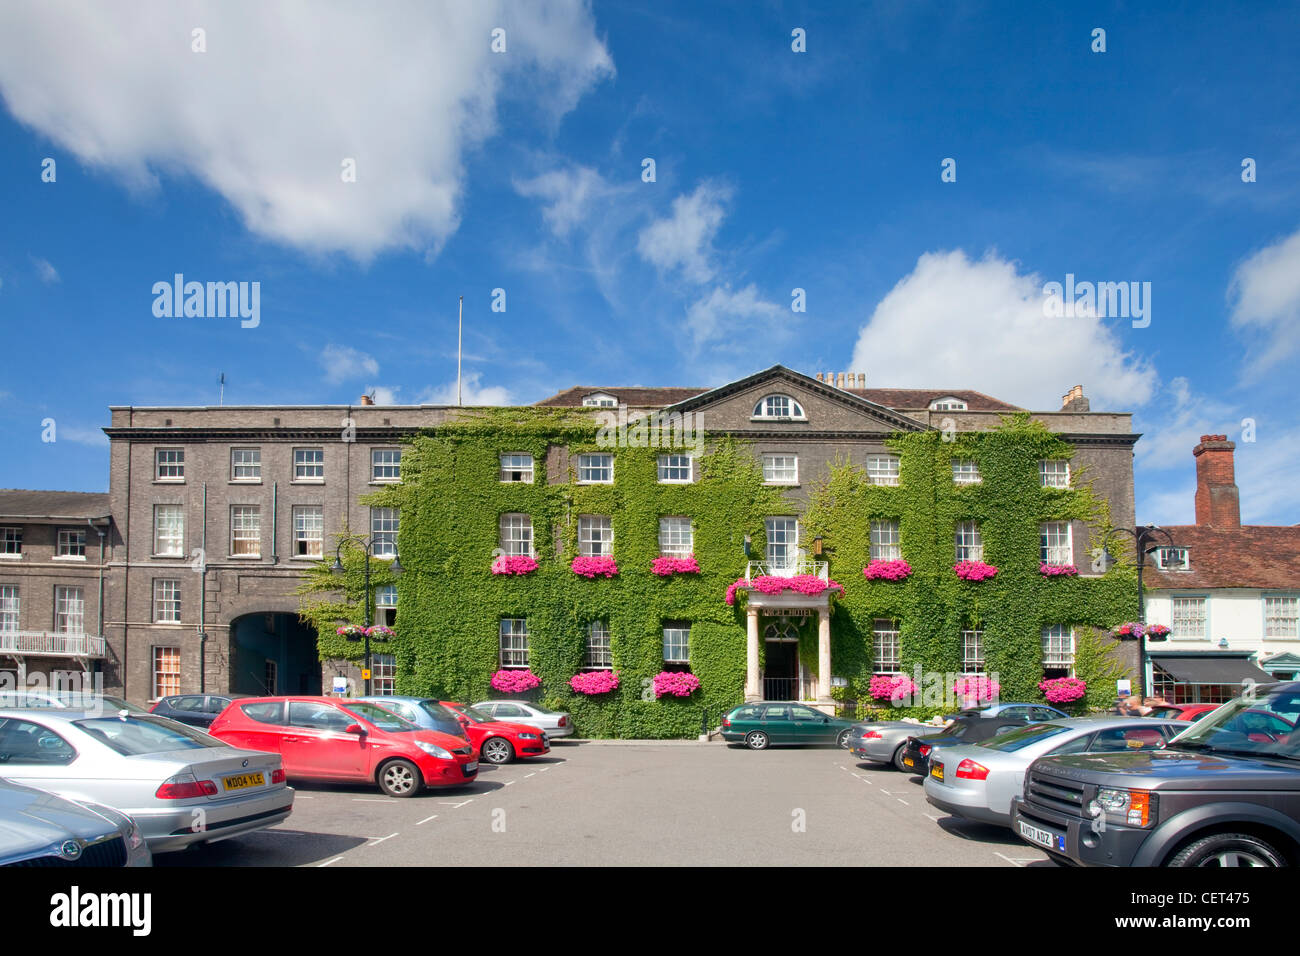 The Angel Hotel in Bury St Edmunds, Suffolk - Stock Image